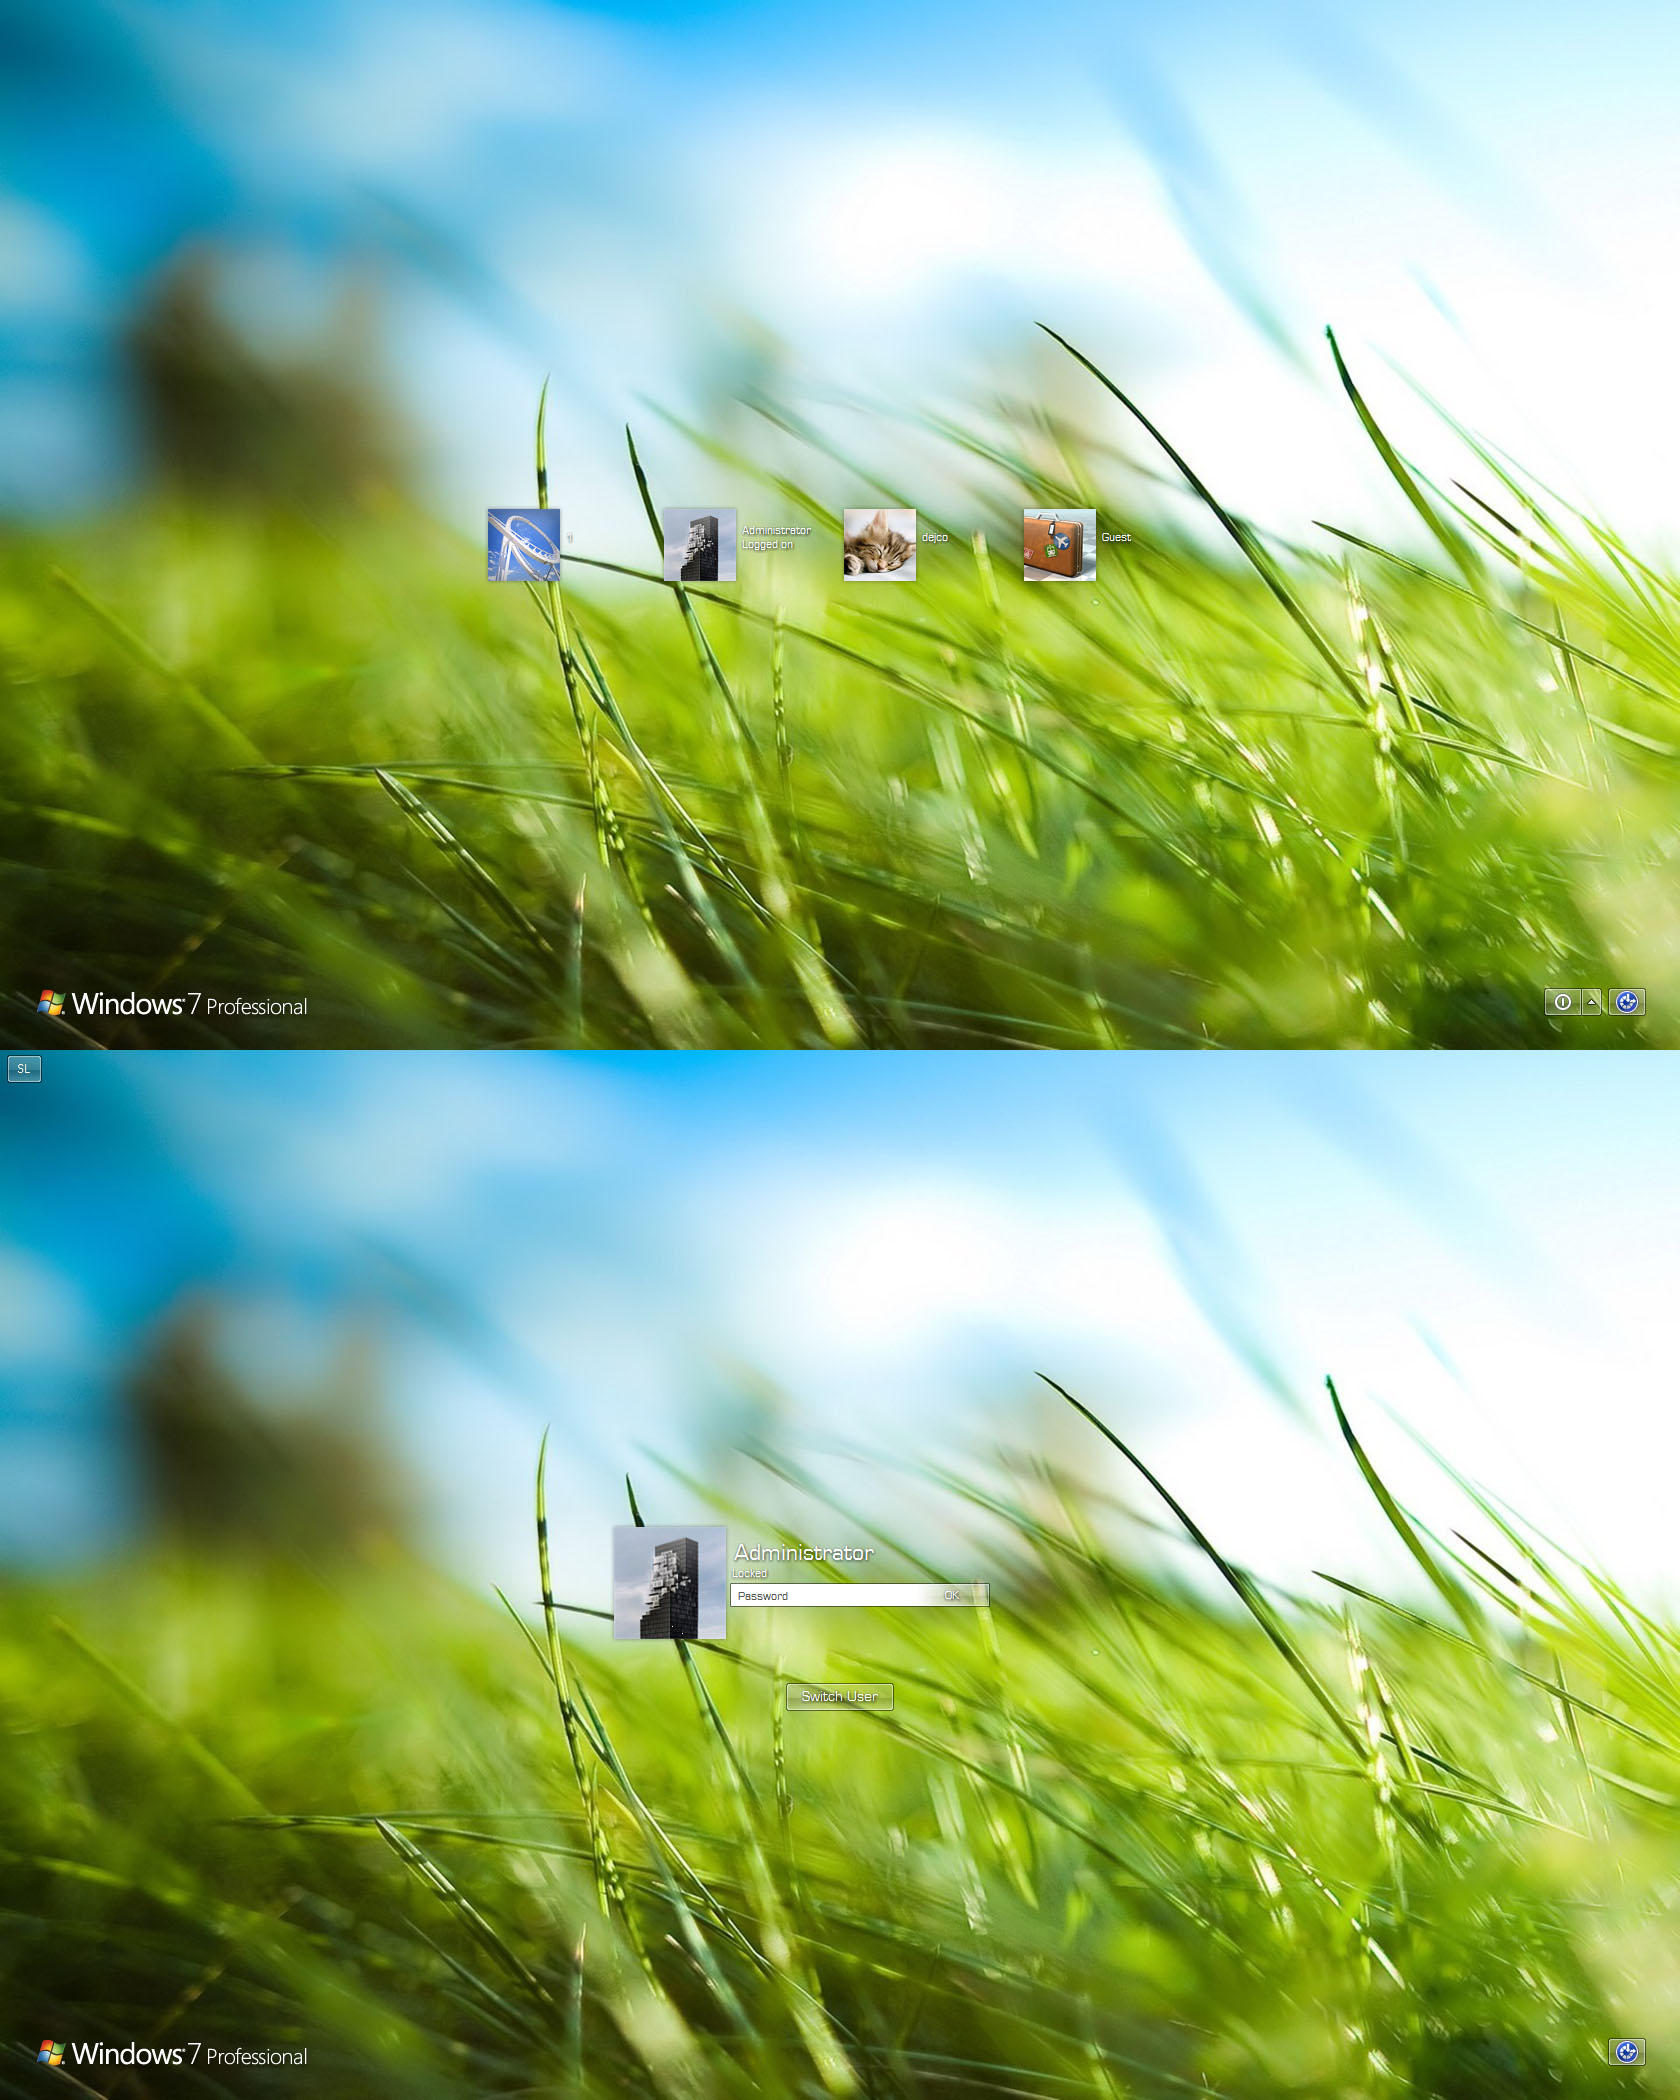 Desktop Wallpaper Vista: Aero Grass Logon Windows 7 By Dejco On DeviantArt